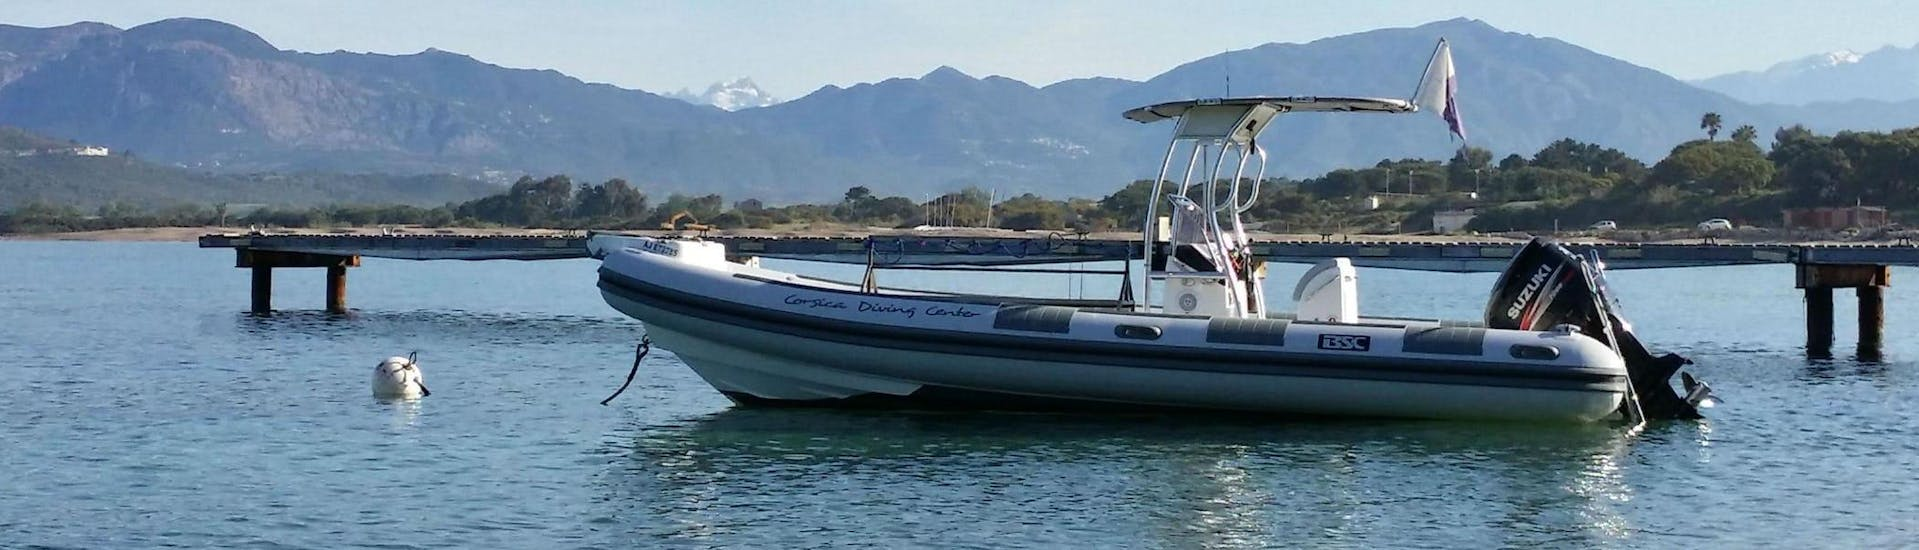 A picture of the boat for the Trial Scuba Diving in Golfe d'Ajaccio for Beginners activity with Maeva Plongée.